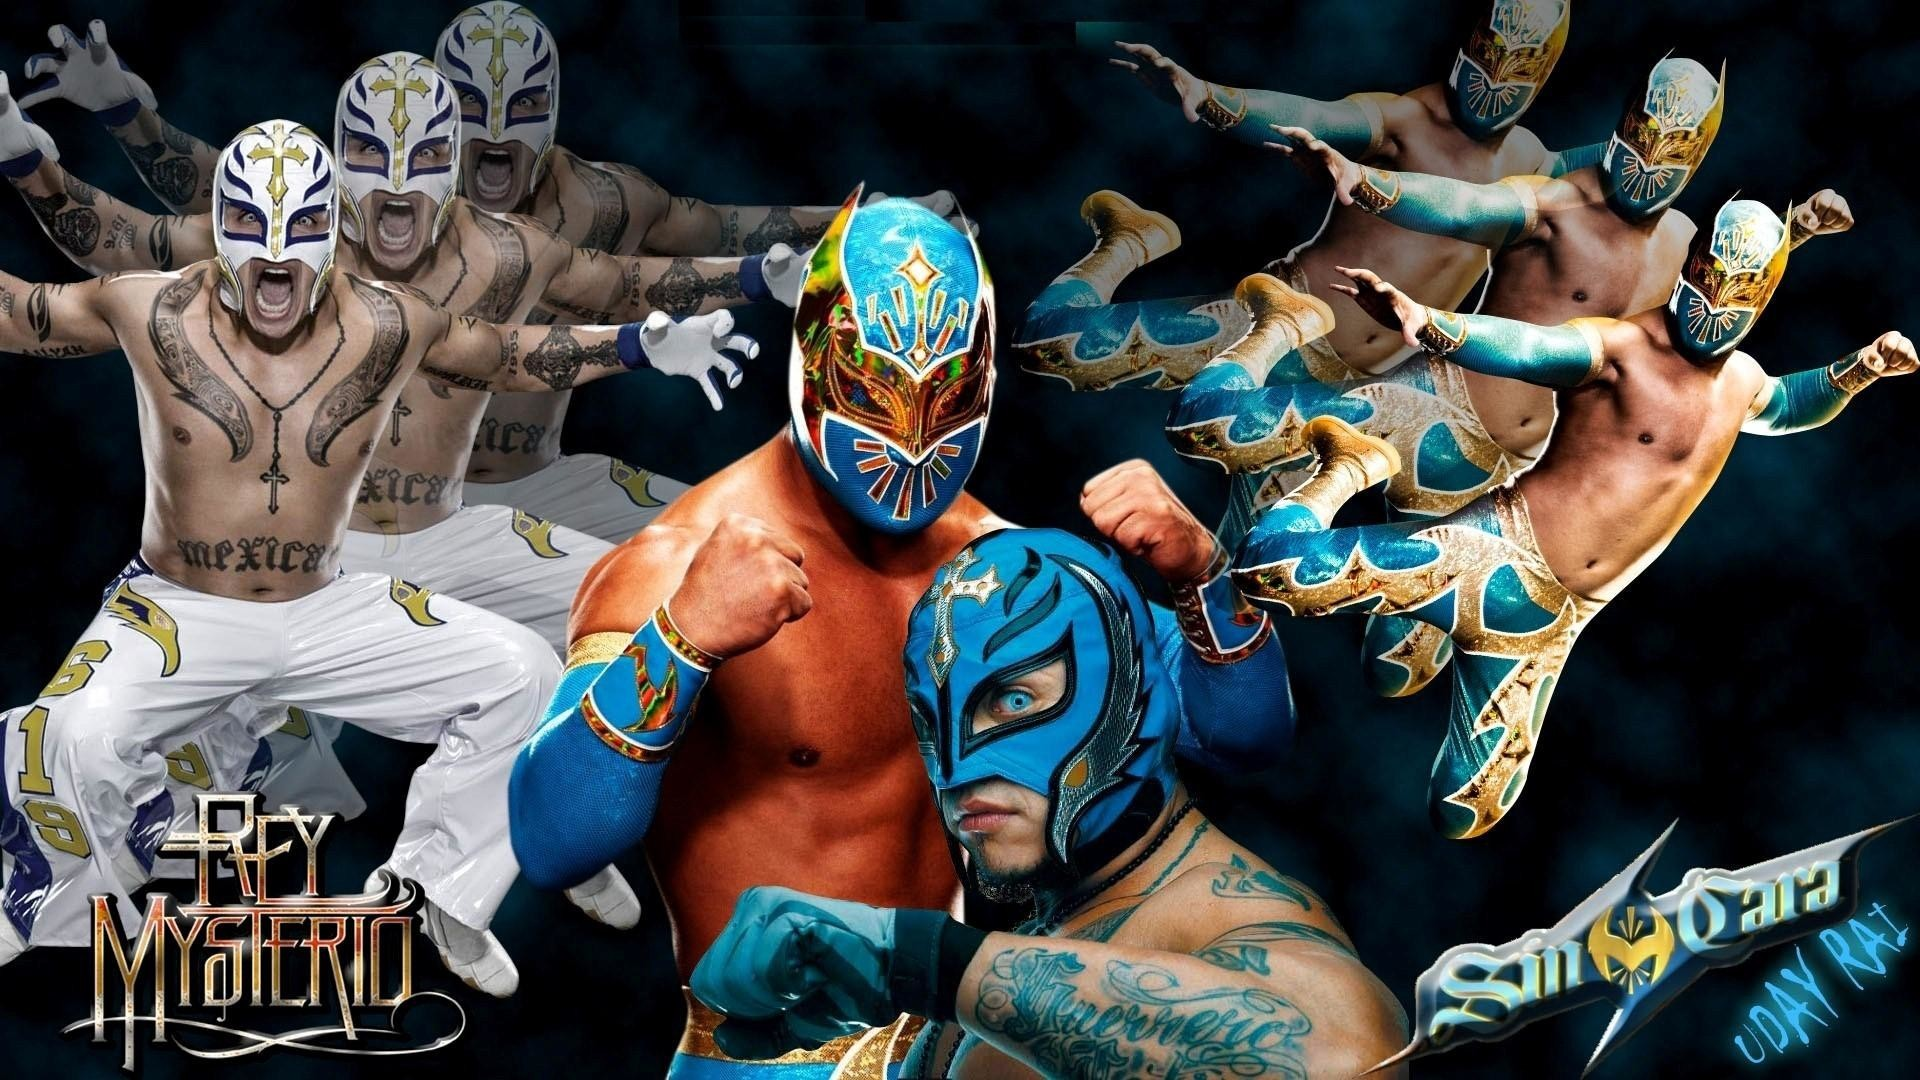 1920x1080  Rey Mysterio 2015 Full HD Wallpapers - Wallpaper Cave